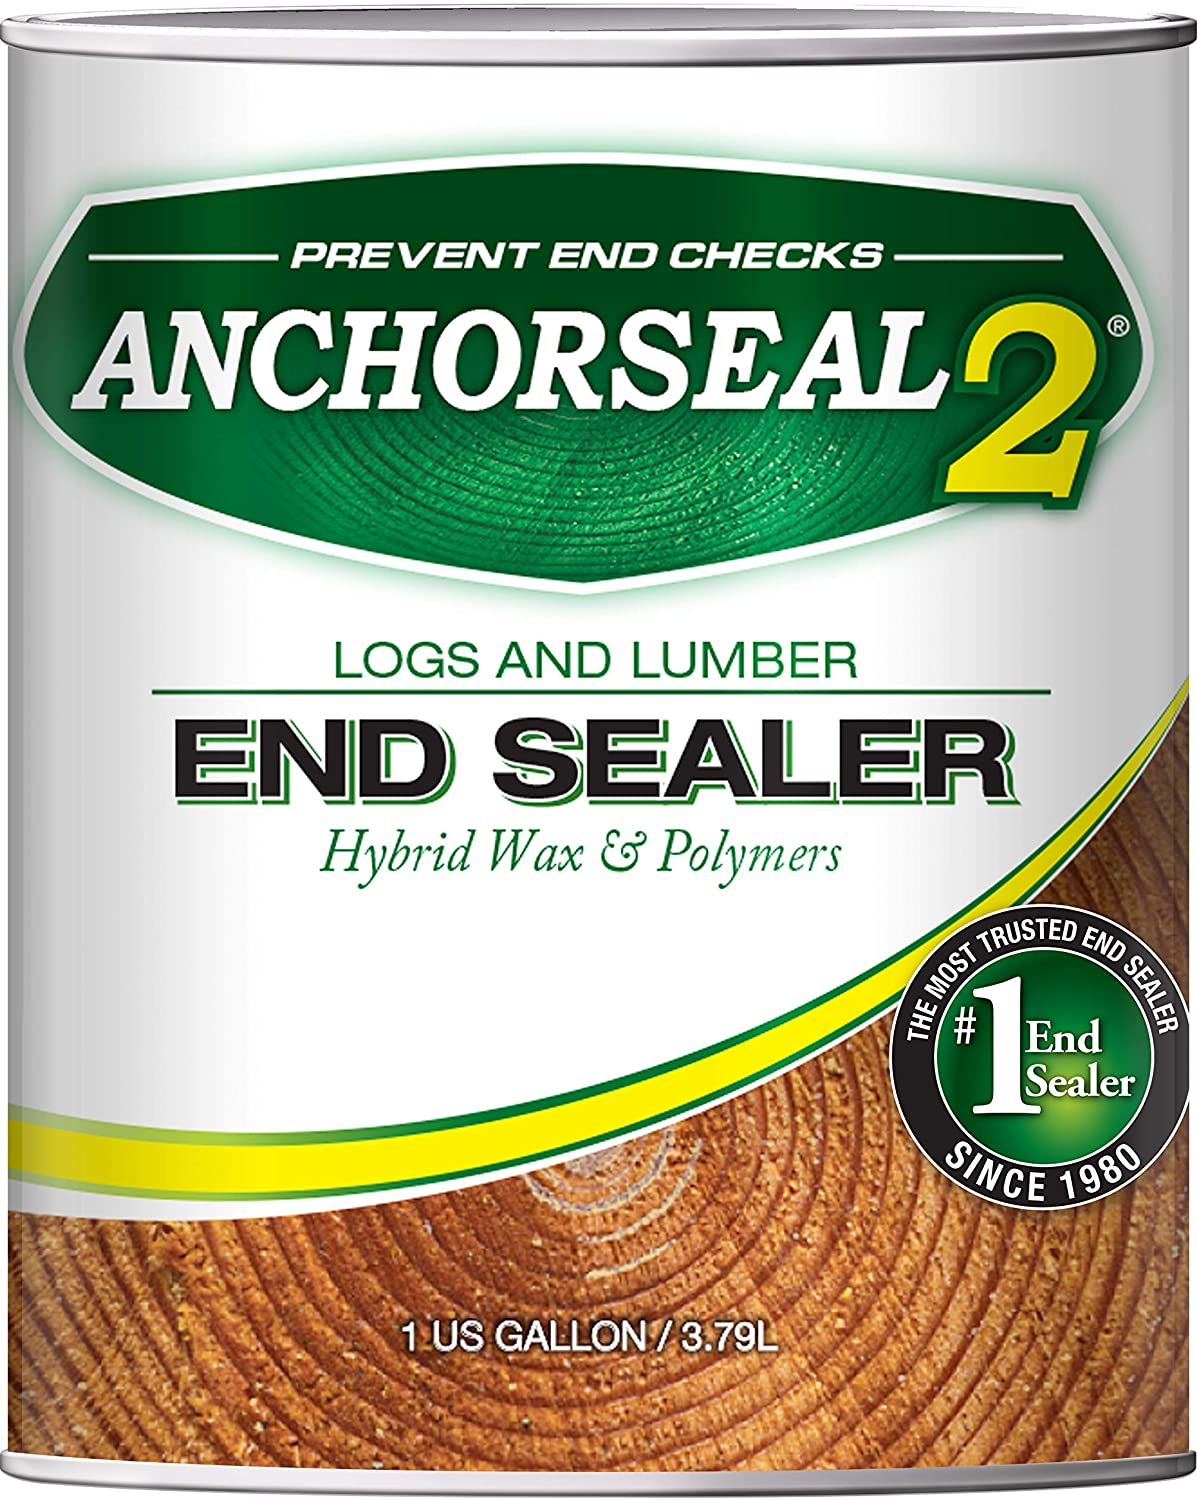 Anchorseal 2 Logs and Lumber Sealer review